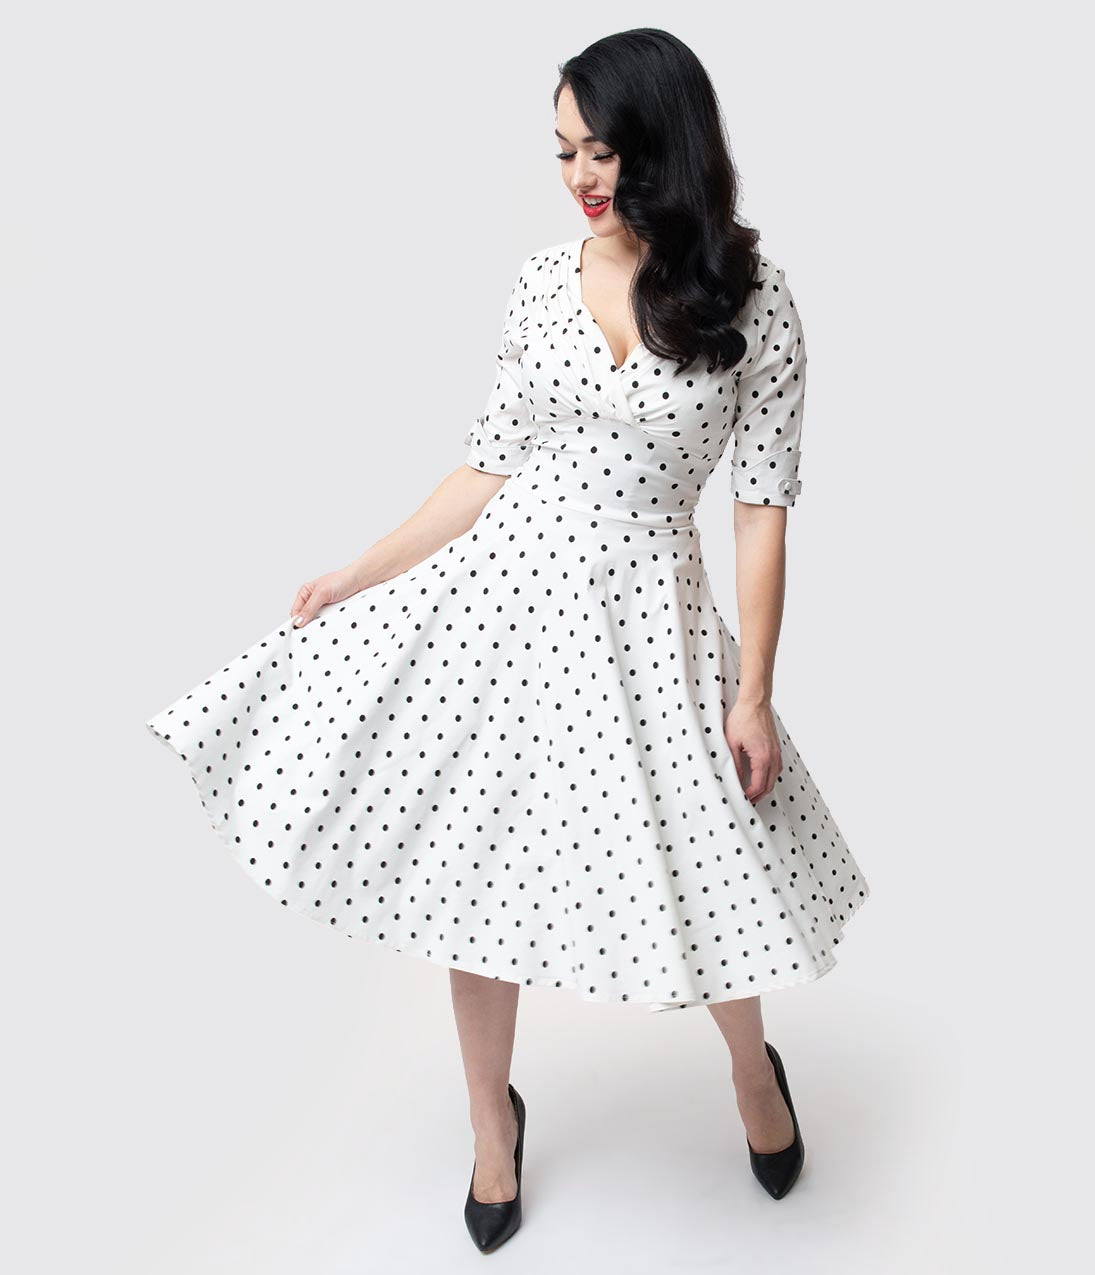 Rockabilly Dresses | Rockabilly Clothing | Viva Las Vegas Unique Vintage 1950S White  Black Dot Delores Swing Dress With Sleeves $92.00 AT vintagedancer.com